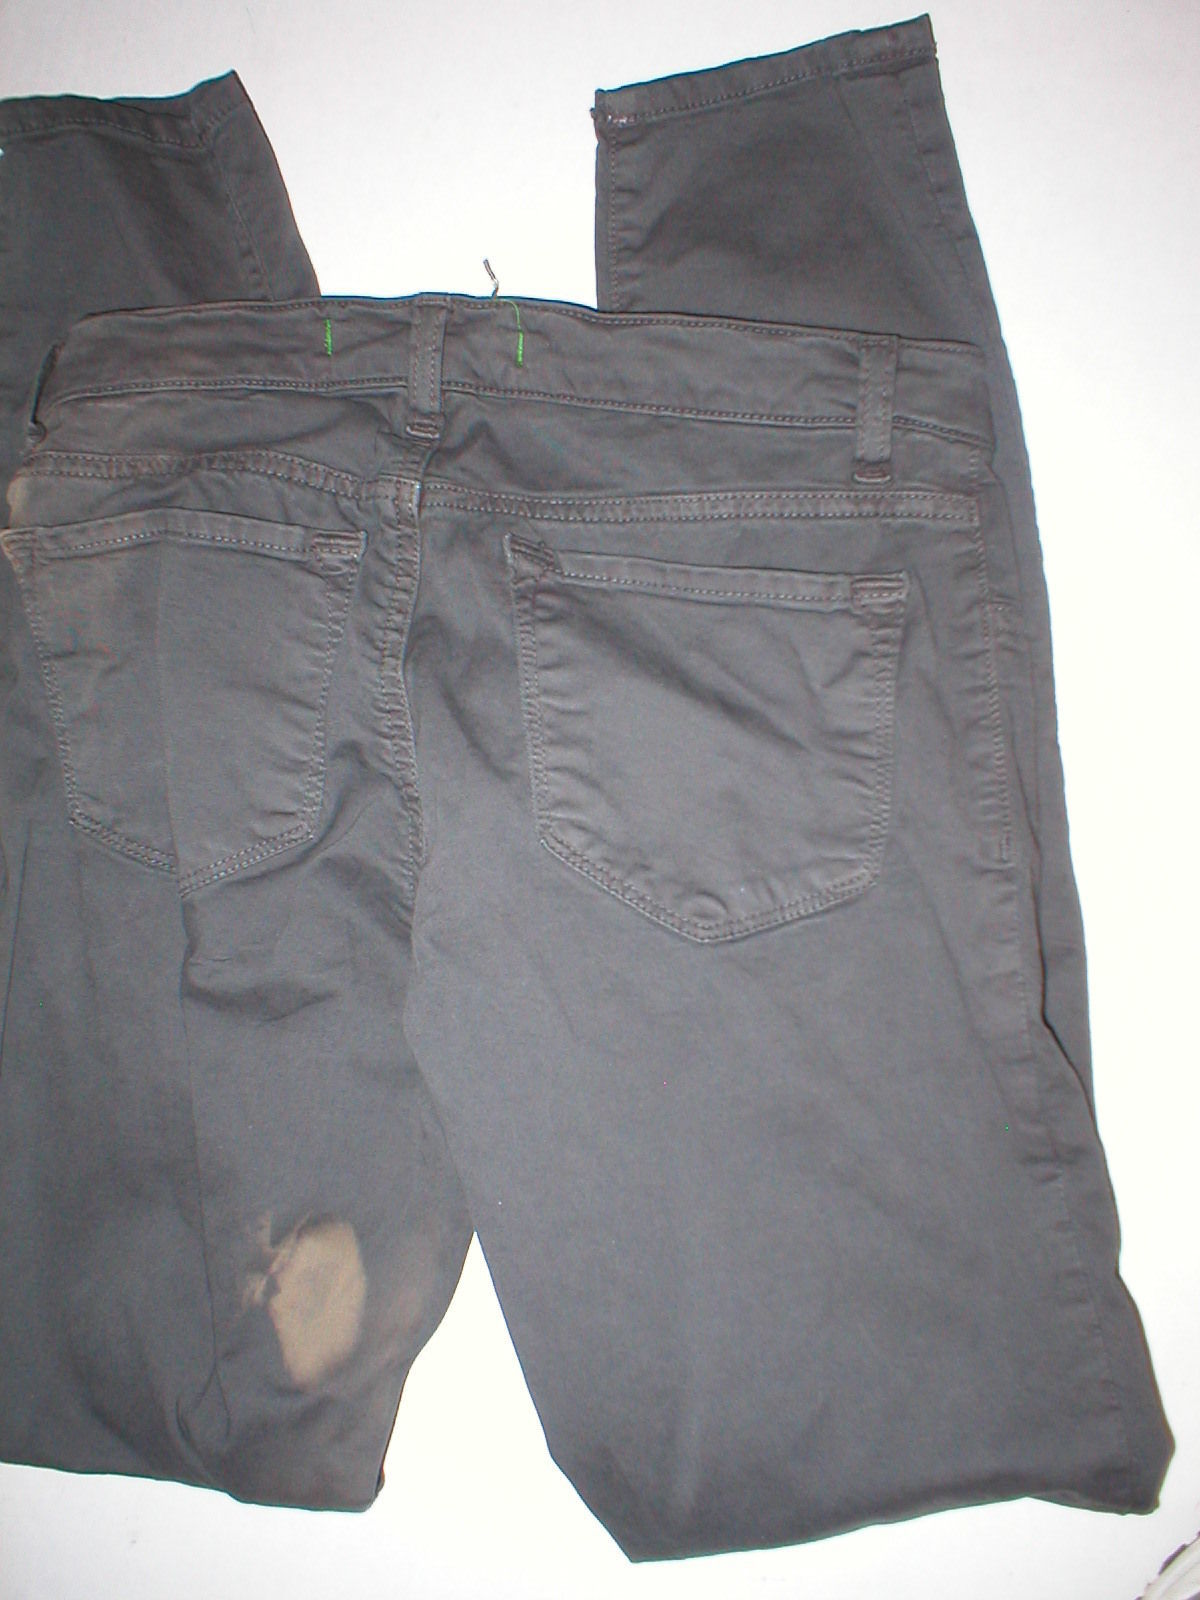 New J Brand Jeans Womens Skinny Pants Twill Machine Gray 24 Dark 26  28 Japanese image 4